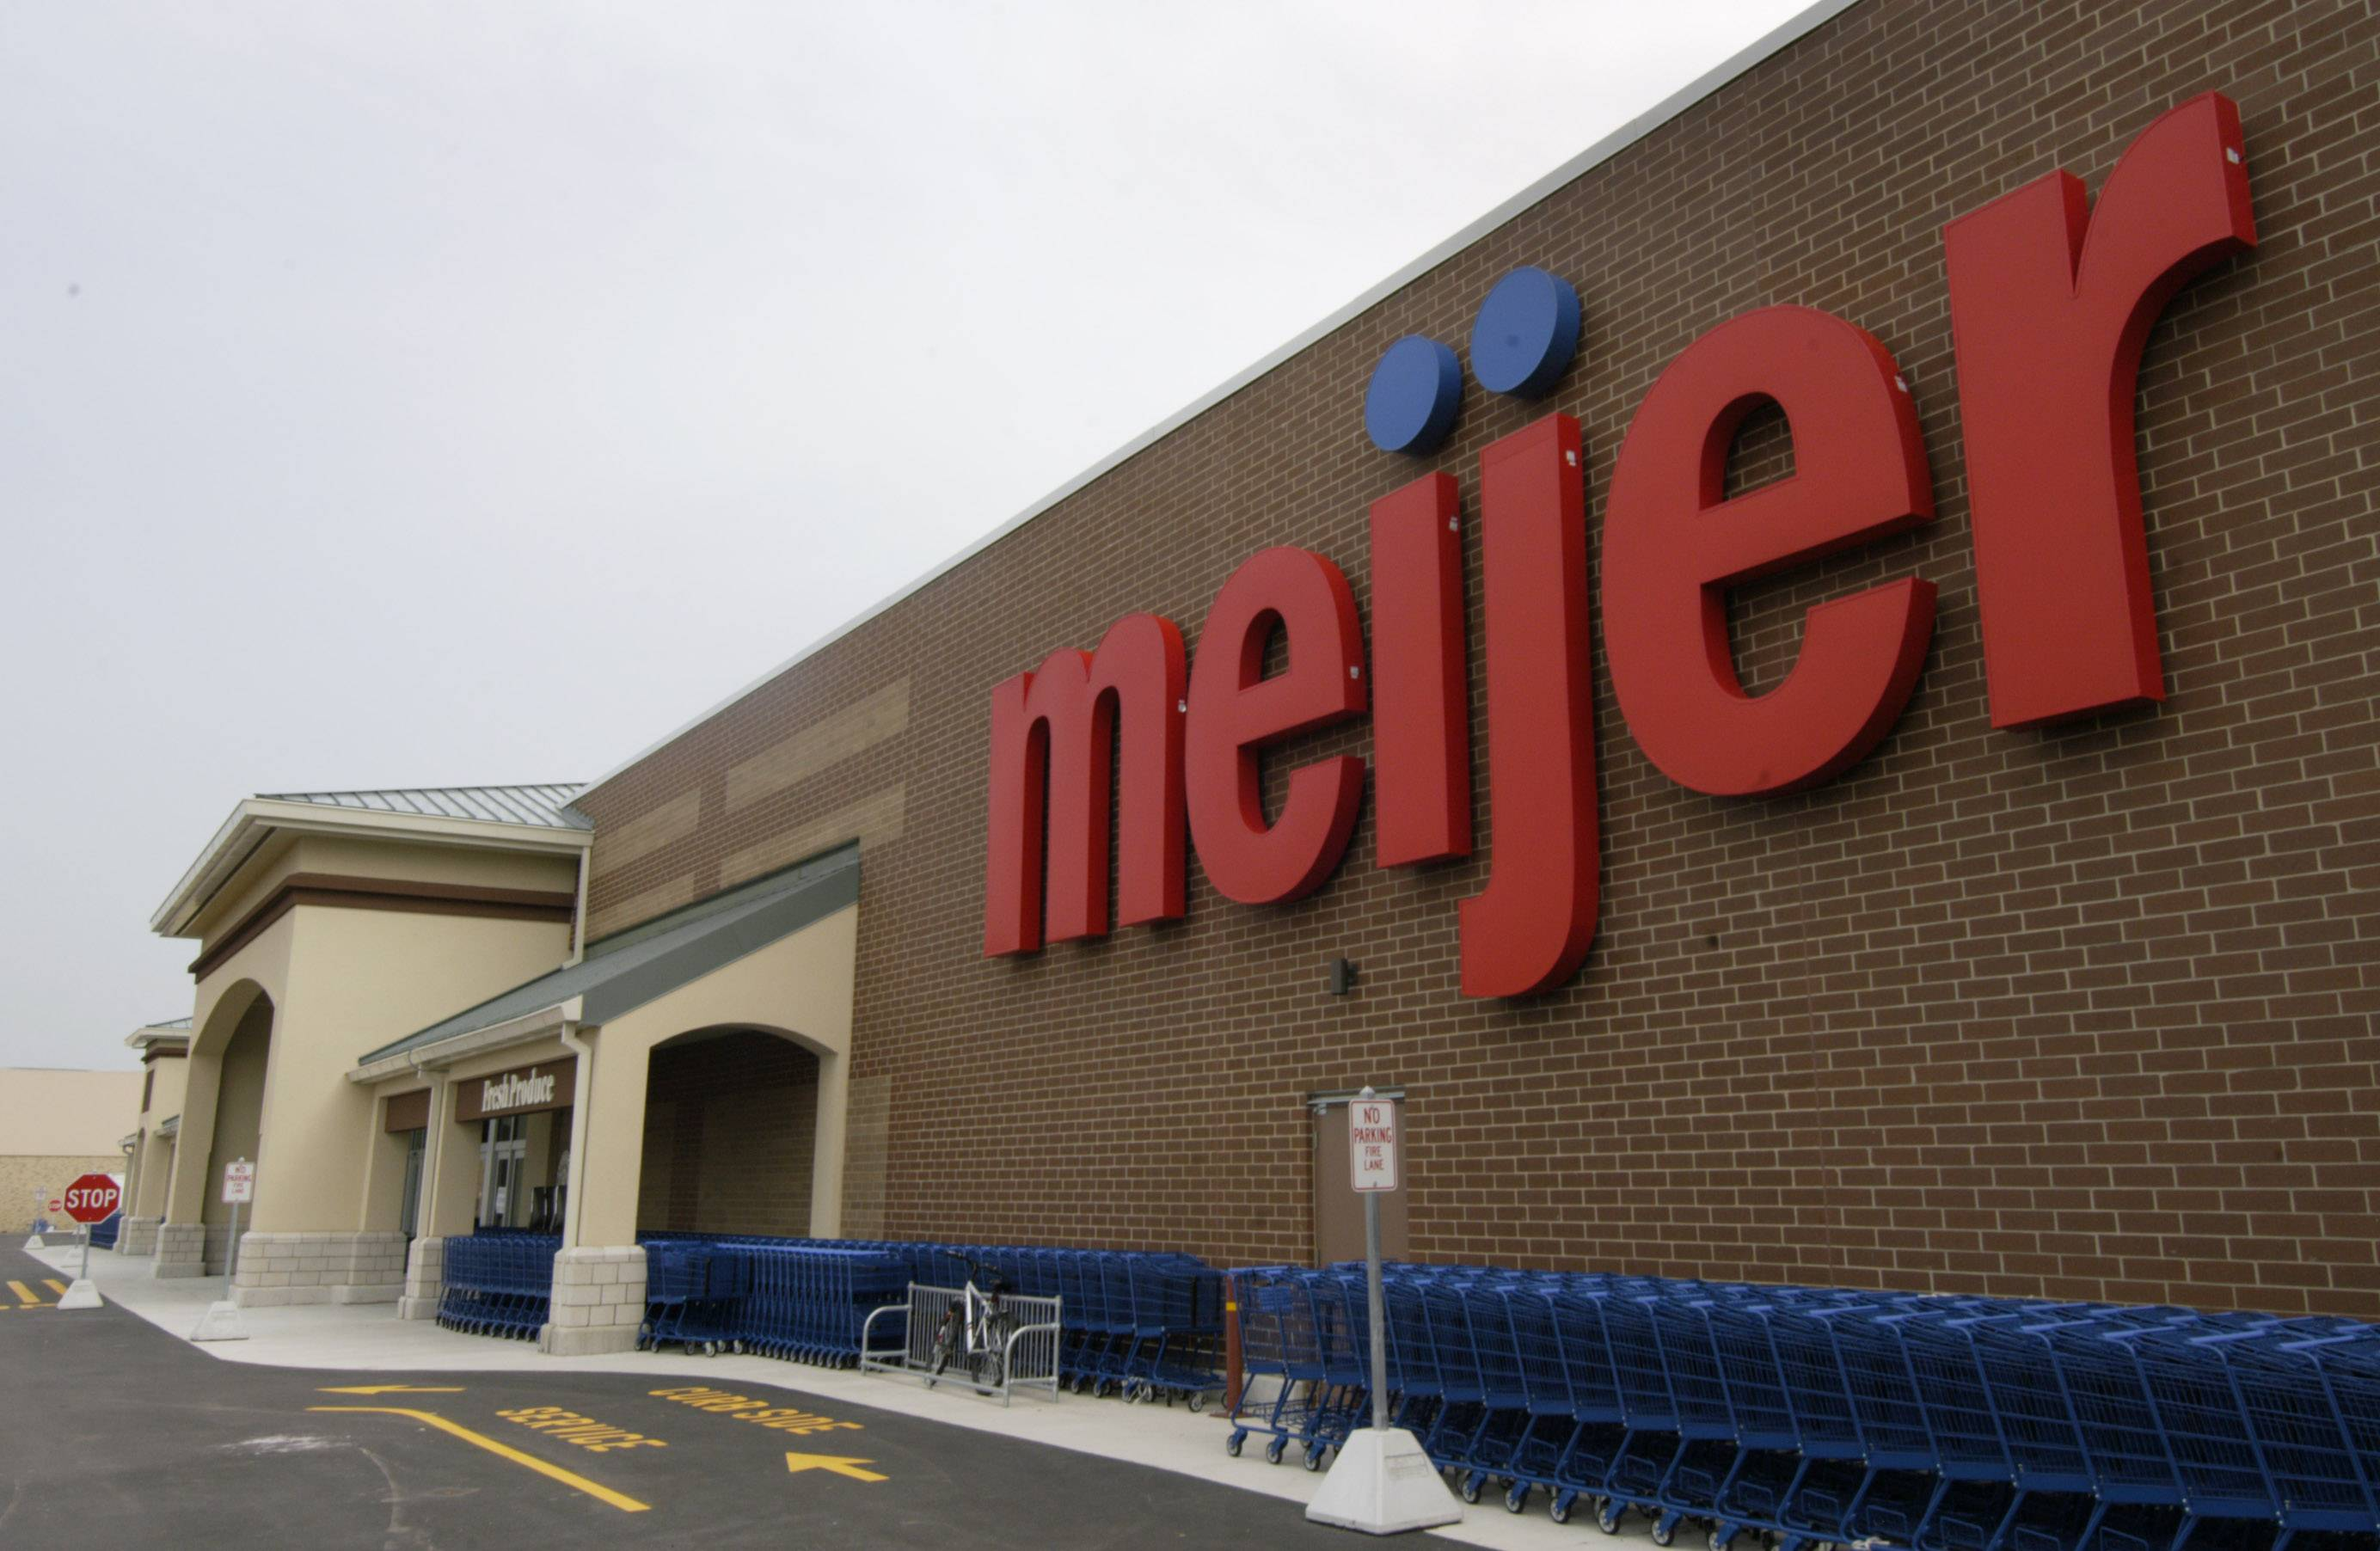 Meijer announced Tuesday it has rolled out its new Shop & Scan mobile shopping checkout program to its 18 suburban Chicago stores.